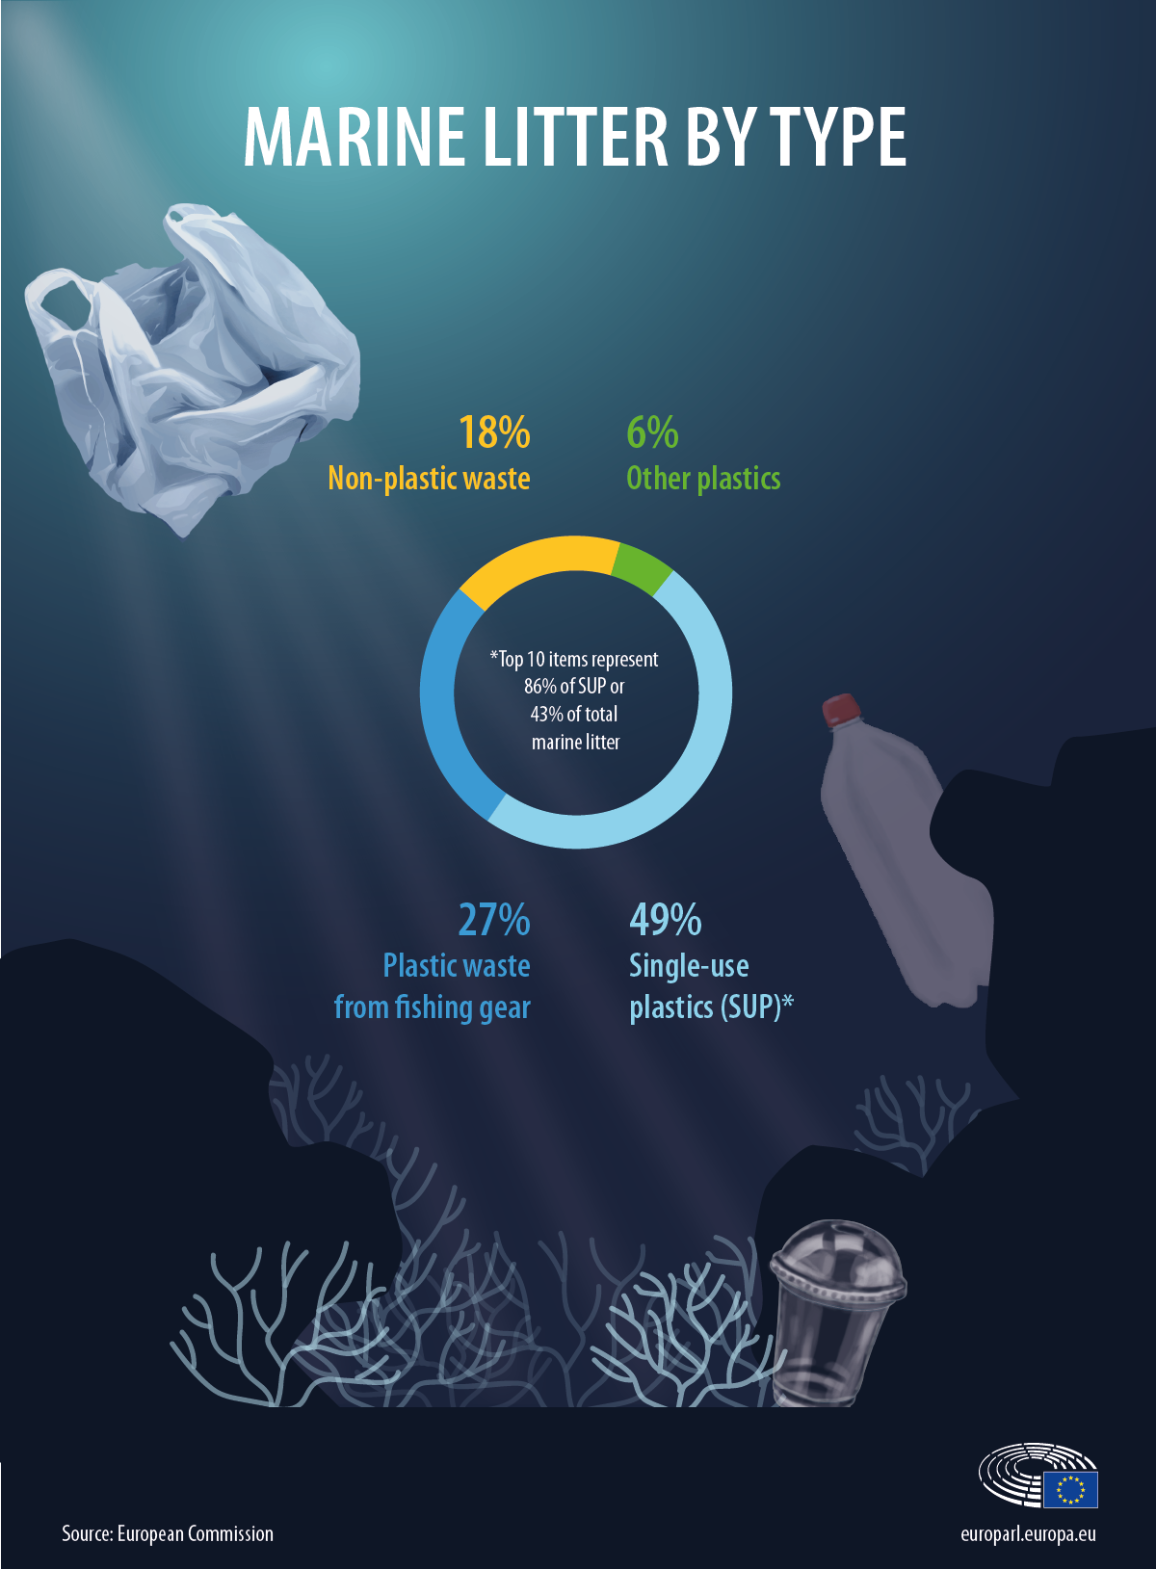 Infographic on plastic and non-plastic marine litter by type